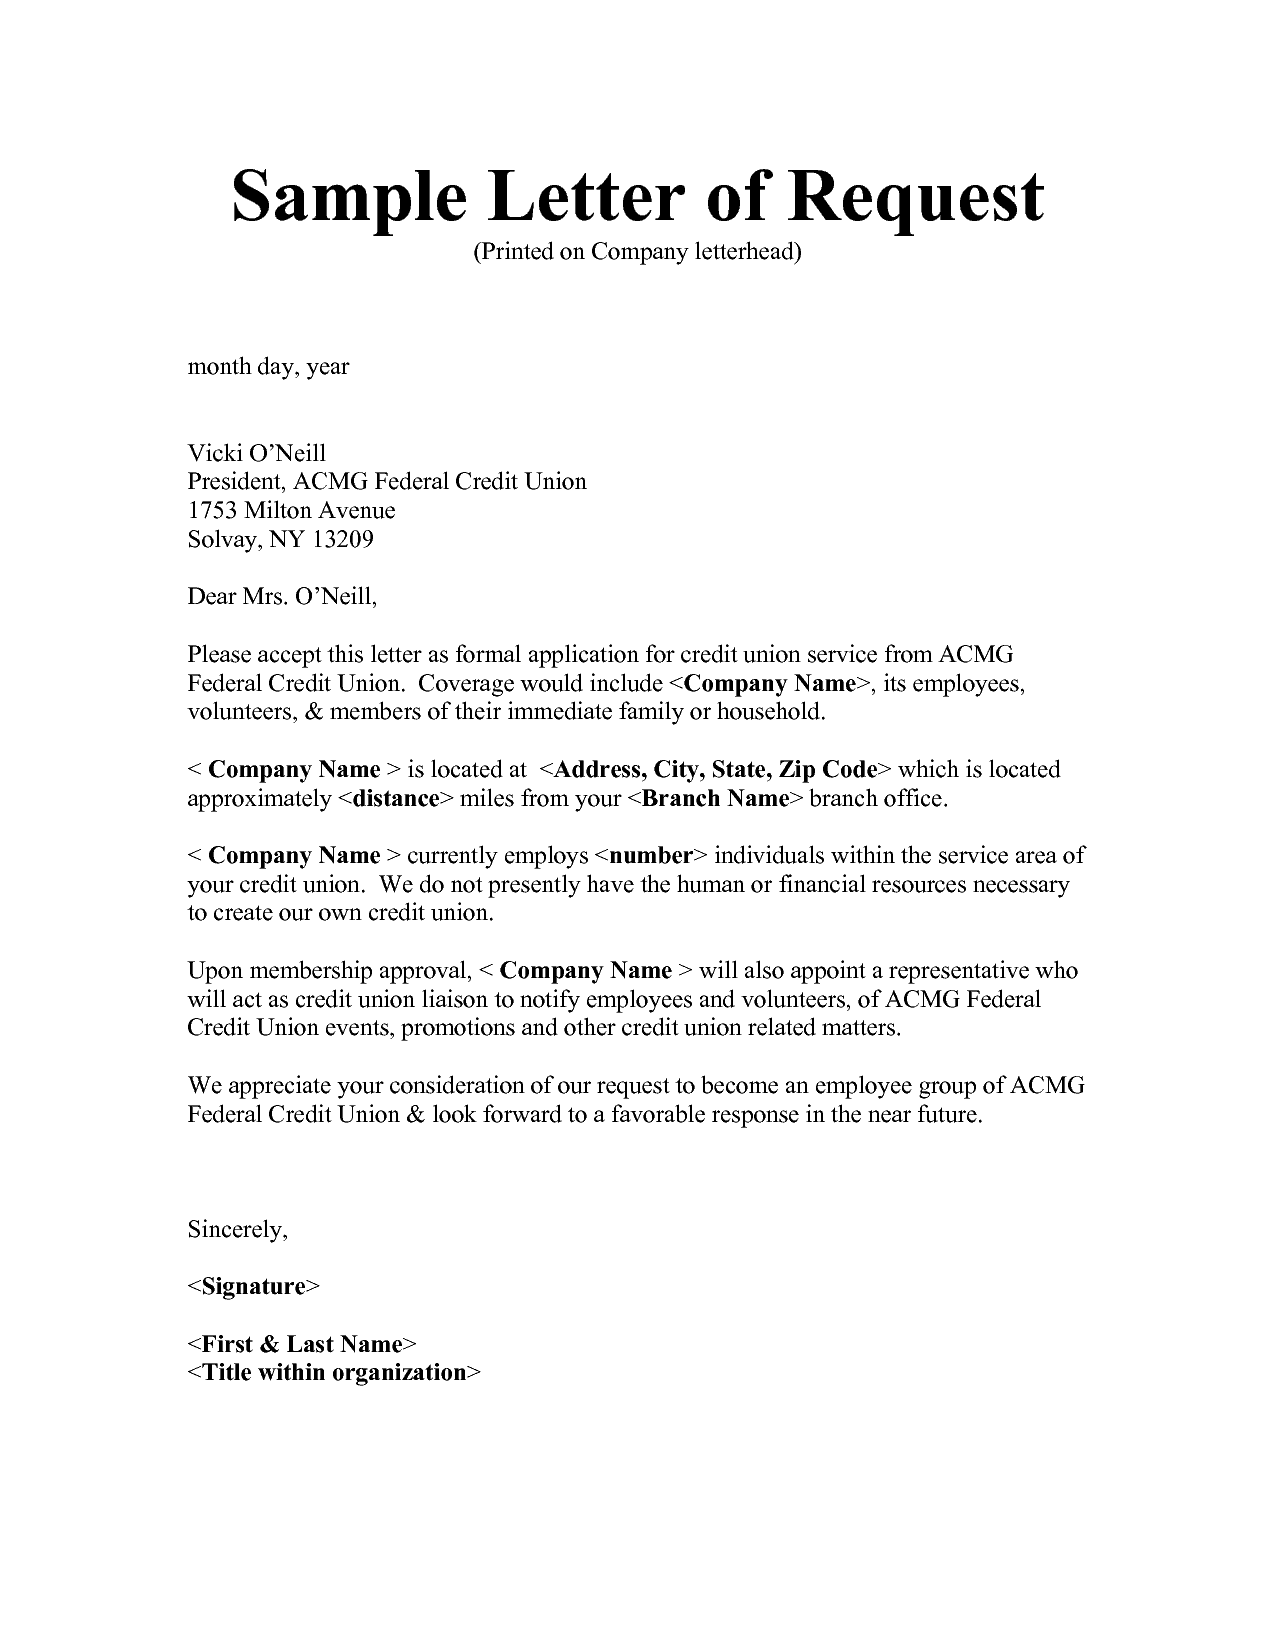 Cover letter for submitting project proposal August 15